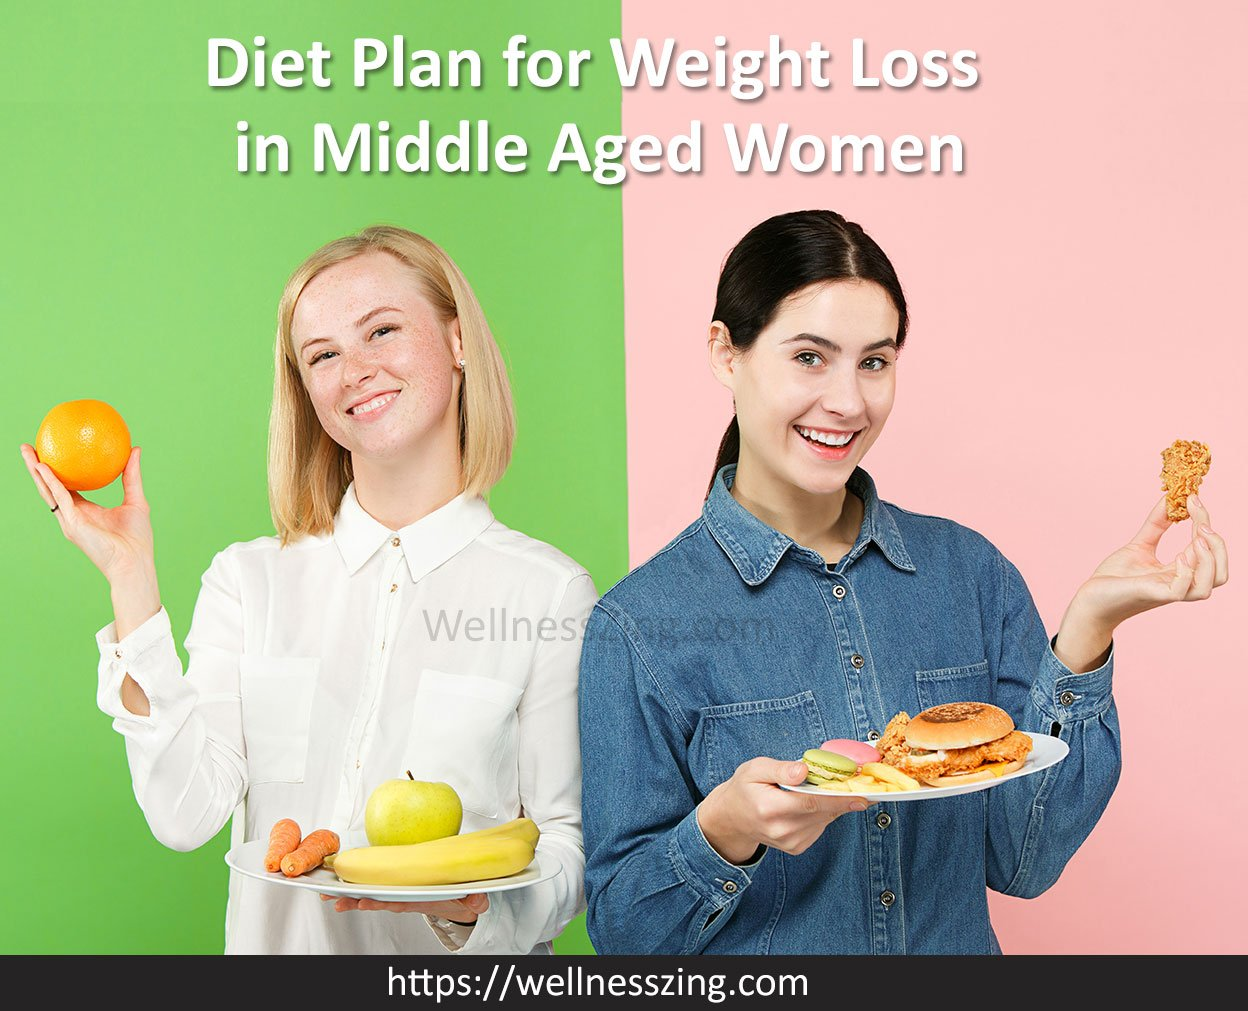 Healthy Diet Plan for Middle Age Women for Weight Loss